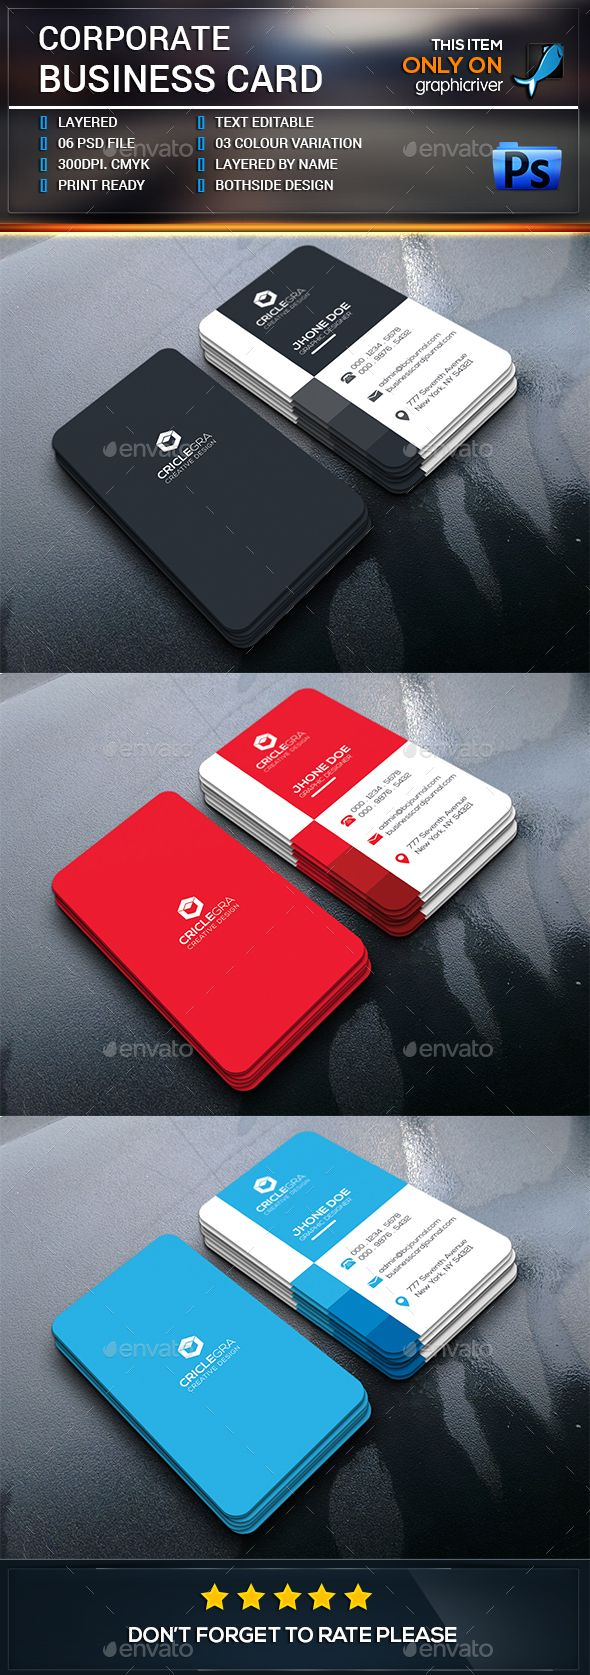 Corporate Business Card by see_art This is a Corporate Business Card Template. This template download contains a 300 dpi print-ready CMYK 06 psd files. All main elem